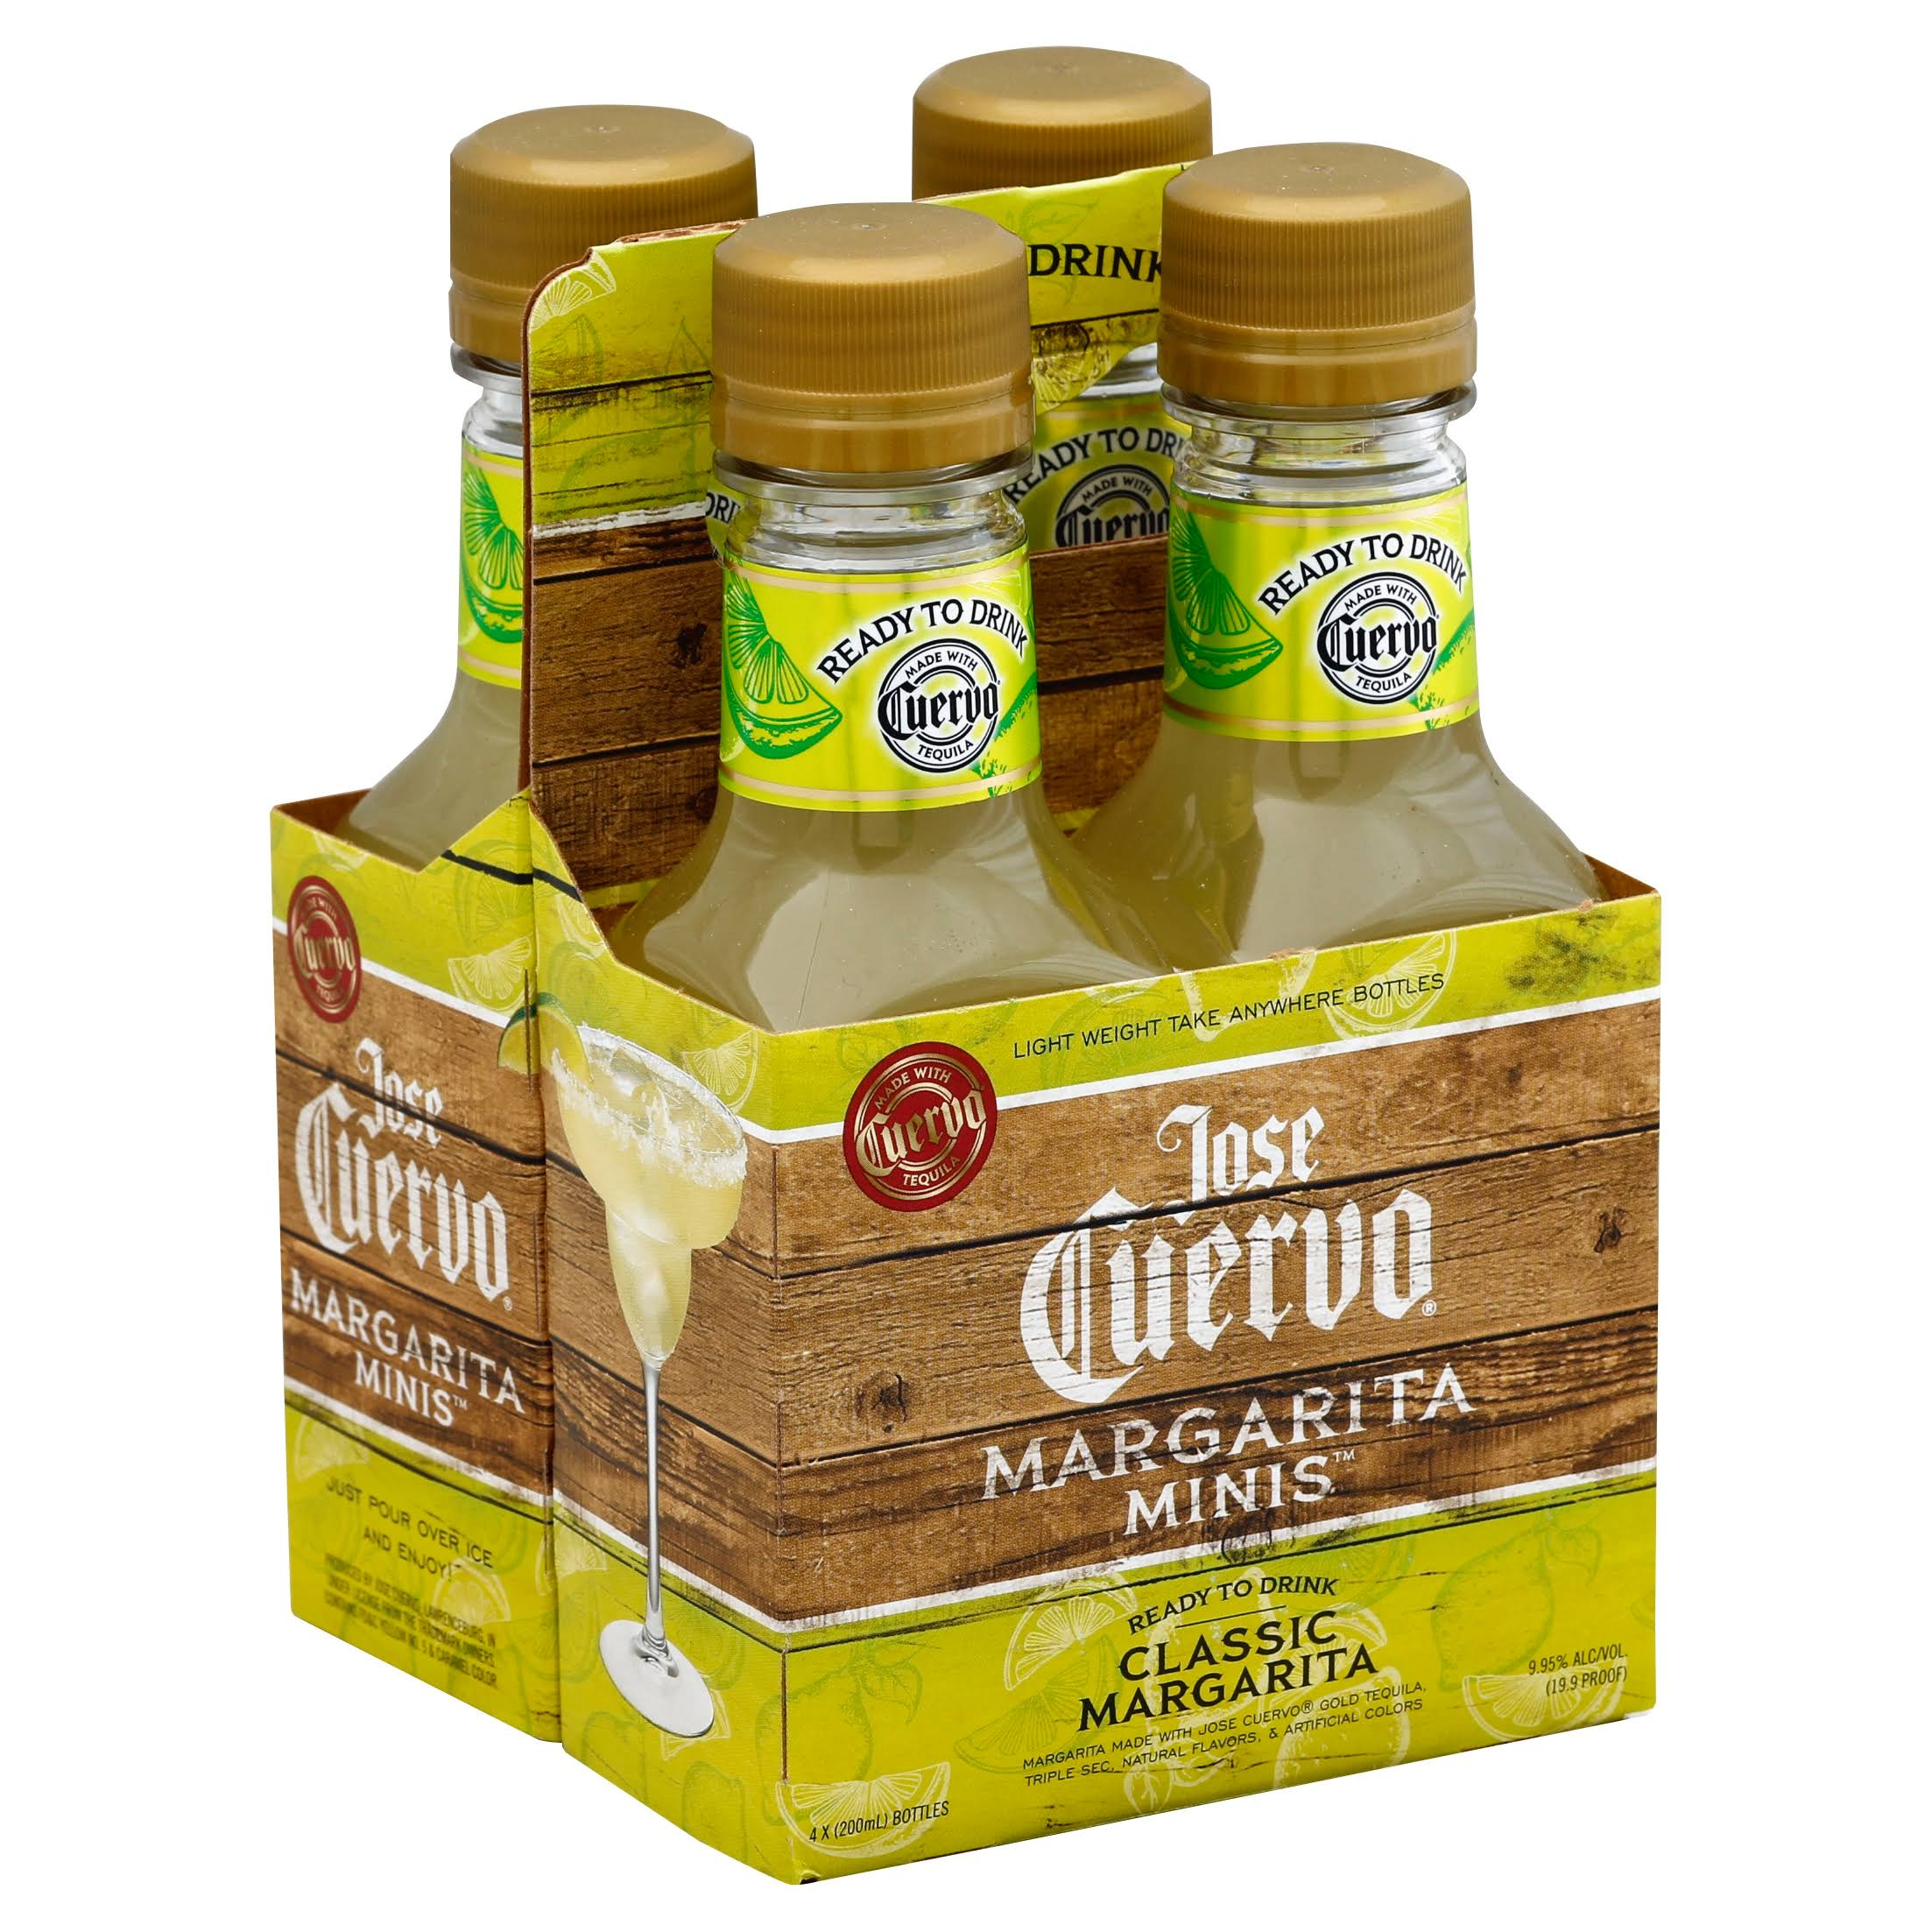 Jose Cuervo Margarita, Classic, Minis - 4 pack, 200 ml bottles